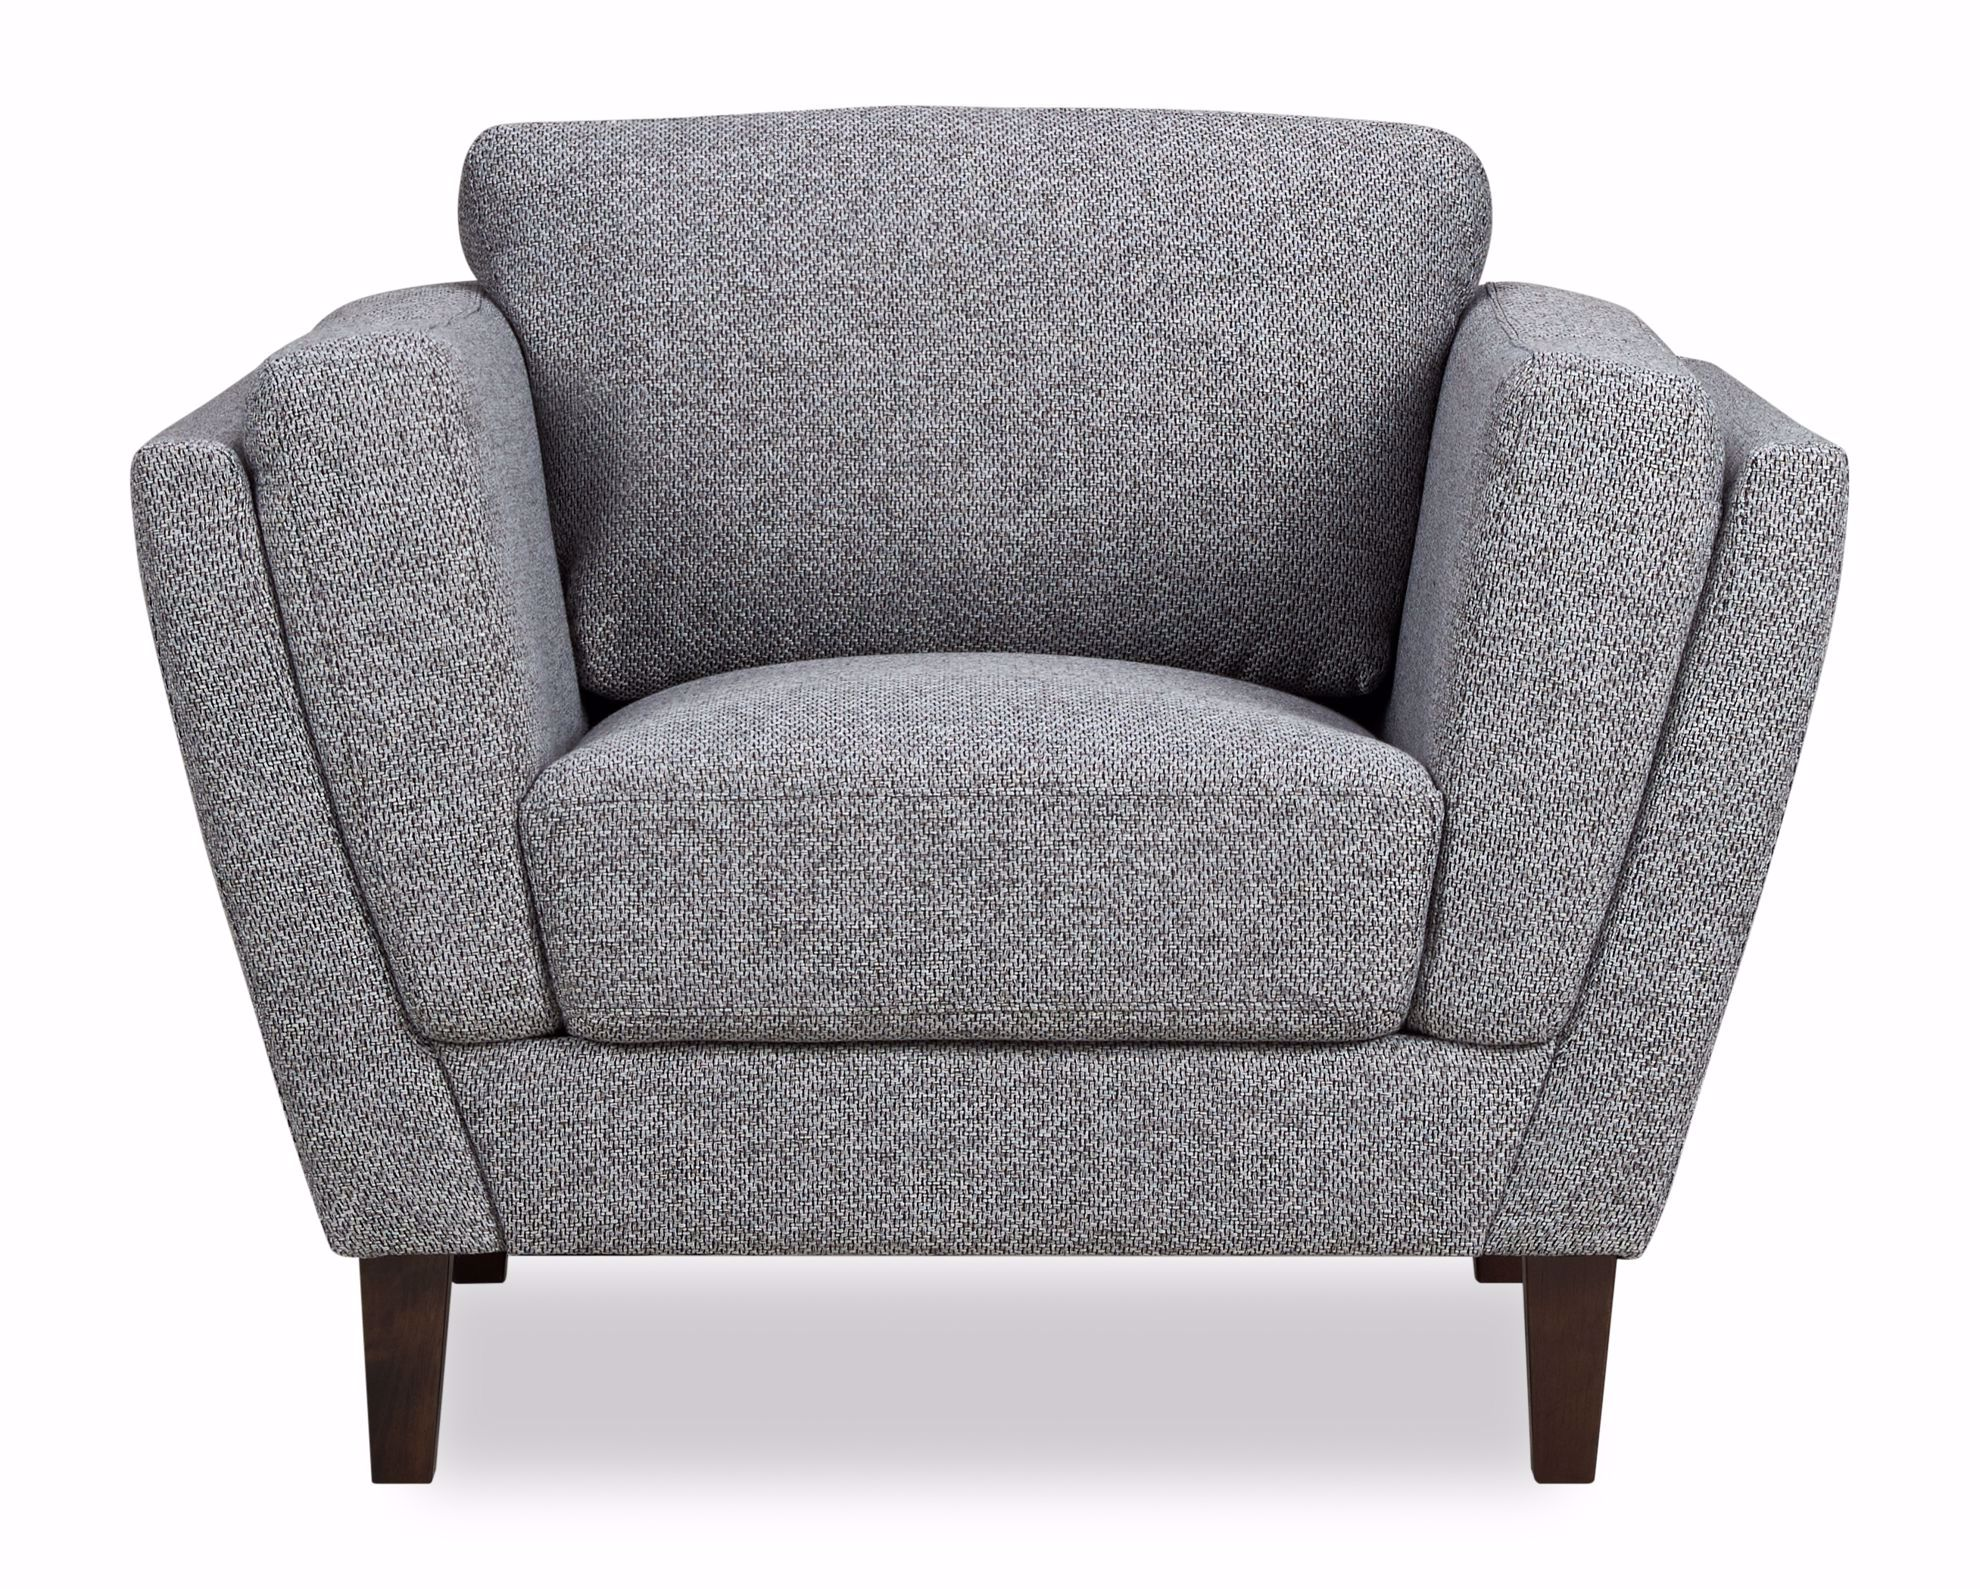 Picture of Hughes Grey Tweed Chair